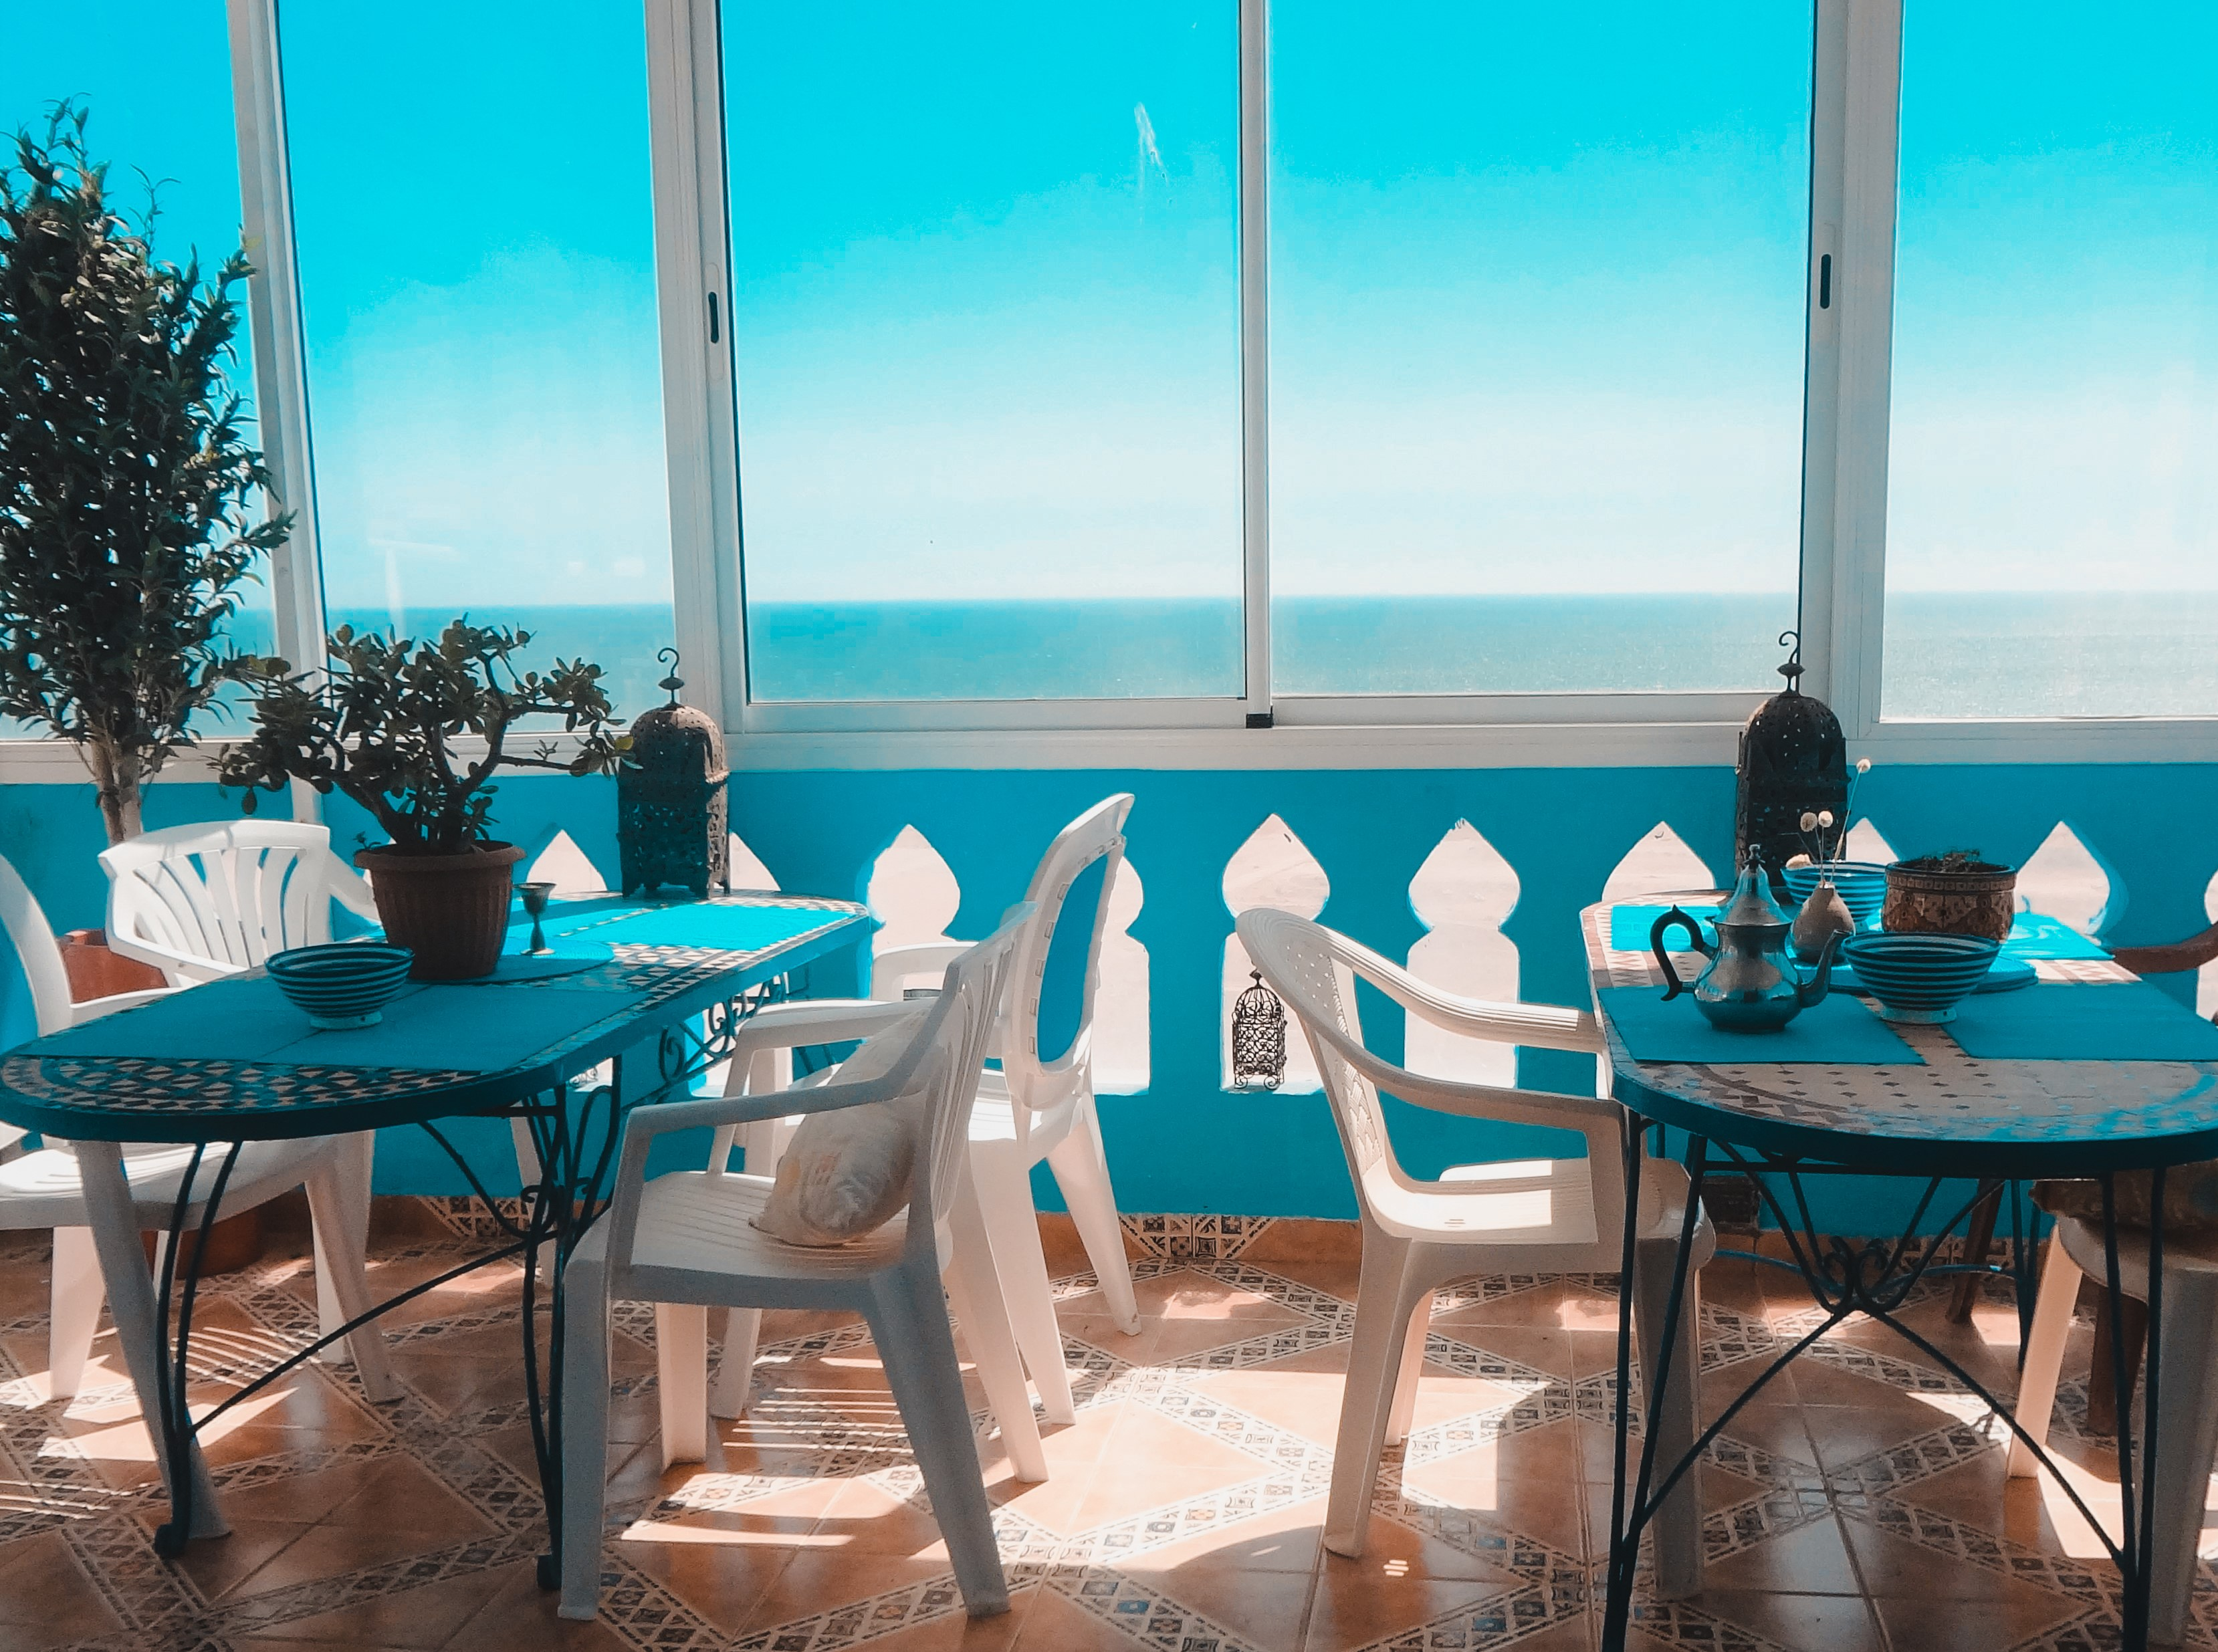 Cheap accommodation in Taghazout area